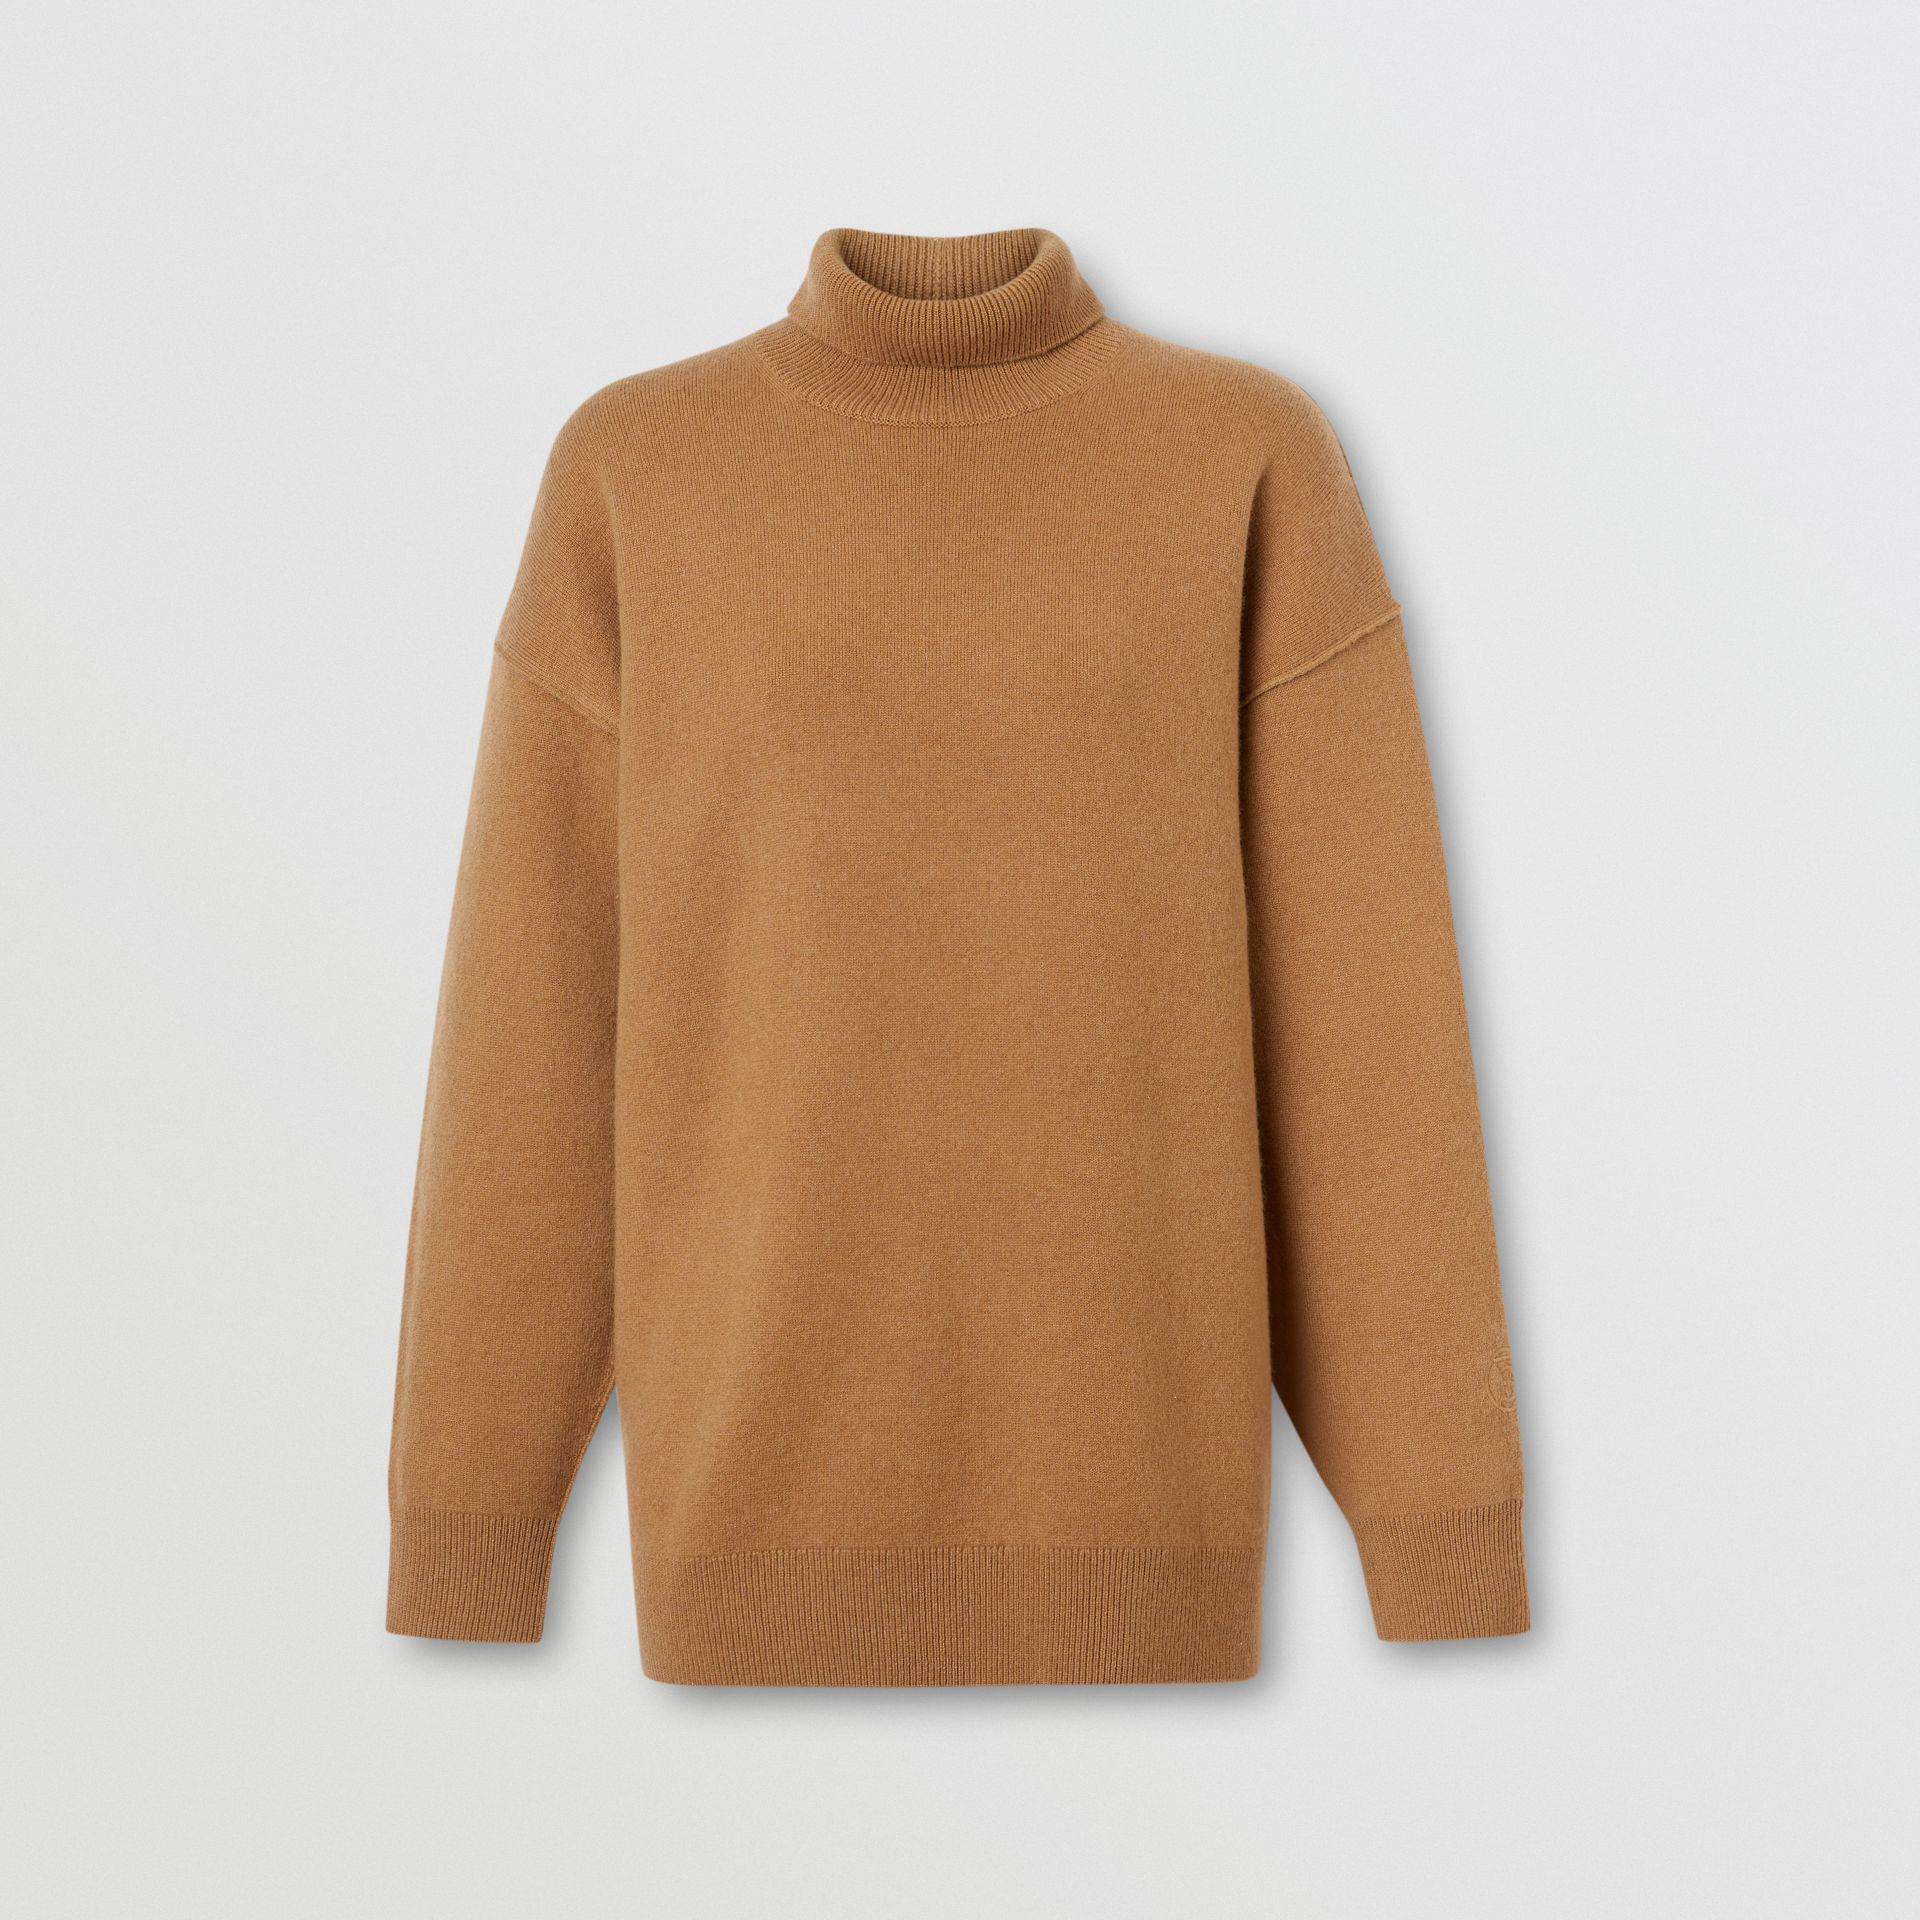 Monogram Motif Cashmere Blend Funnel Neck Sweater in Camel - Women | Burberry - gallery image 2